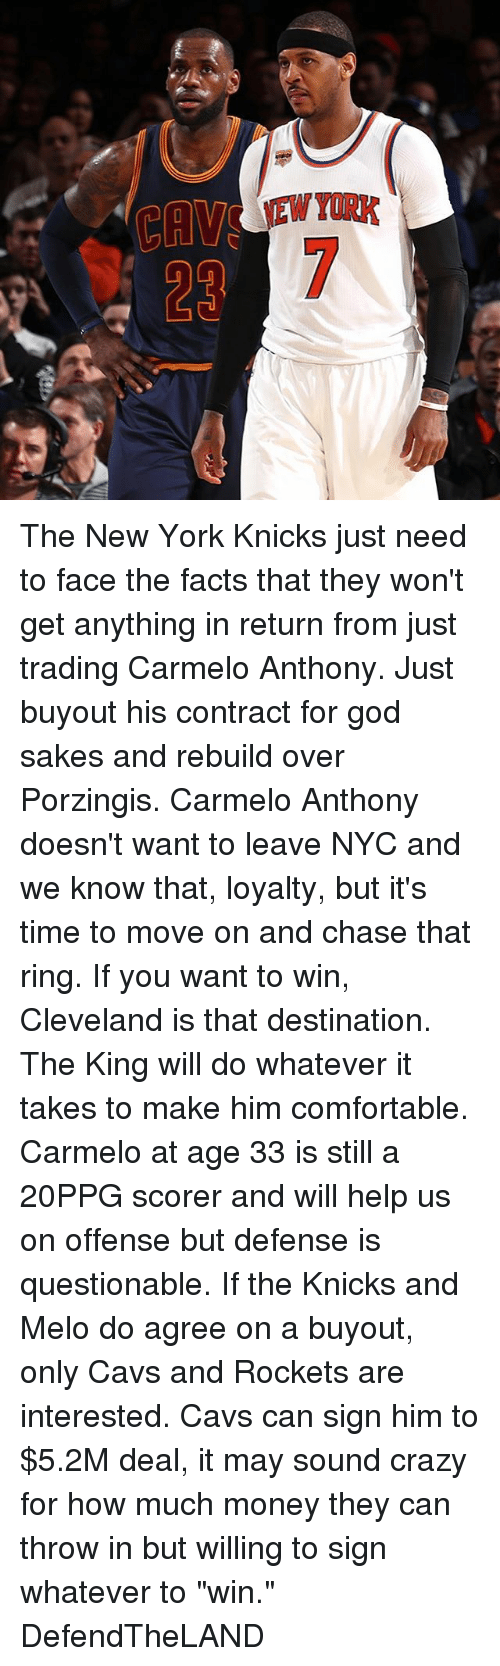 "New York Knicks: The New York Knicks just need to face the facts that they won't get anything in return from just trading Carmelo Anthony. Just buyout his contract for god sakes and rebuild over Porzingis. Carmelo Anthony doesn't want to leave NYC and we know that, loyalty, but it's time to move on and chase that ring. If you want to win, Cleveland is that destination. The King will do whatever it takes to make him comfortable. Carmelo at age 33 is still a 20PPG scorer and will help us on offense but defense is questionable. If the Knicks and Melo do agree on a buyout, only Cavs and Rockets are interested. Cavs can sign him to $5.2M deal, it may sound crazy for how much money they can throw in but willing to sign whatever to ""win."" DefendTheLAND"